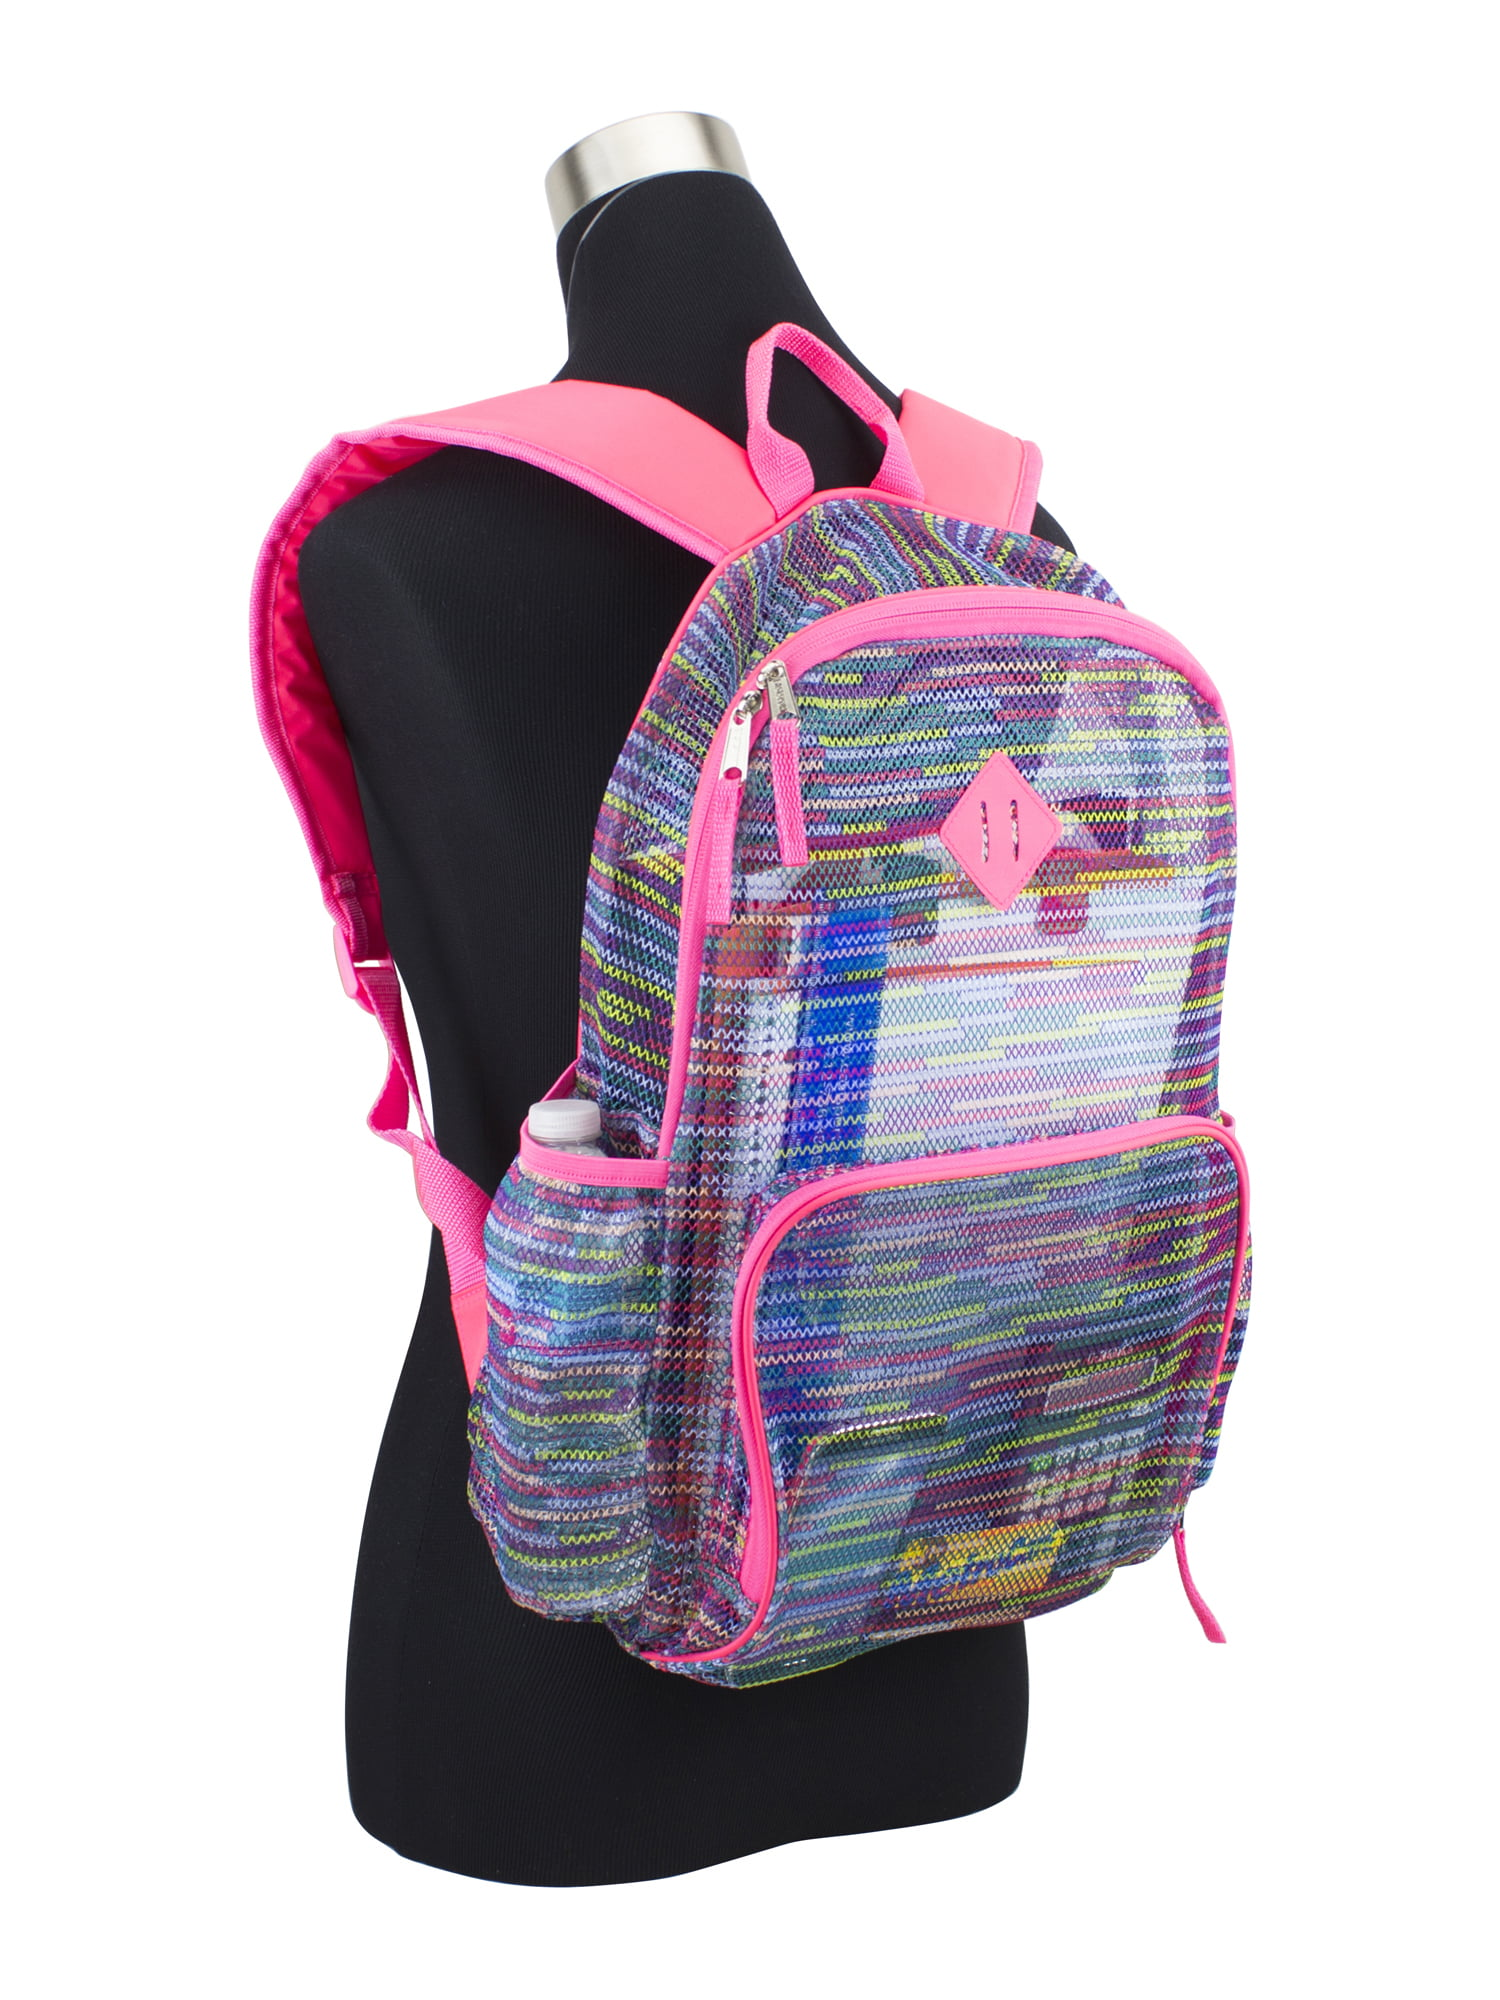 Eastport Backpack New Double Front Backpack pink black plaid book bag New!